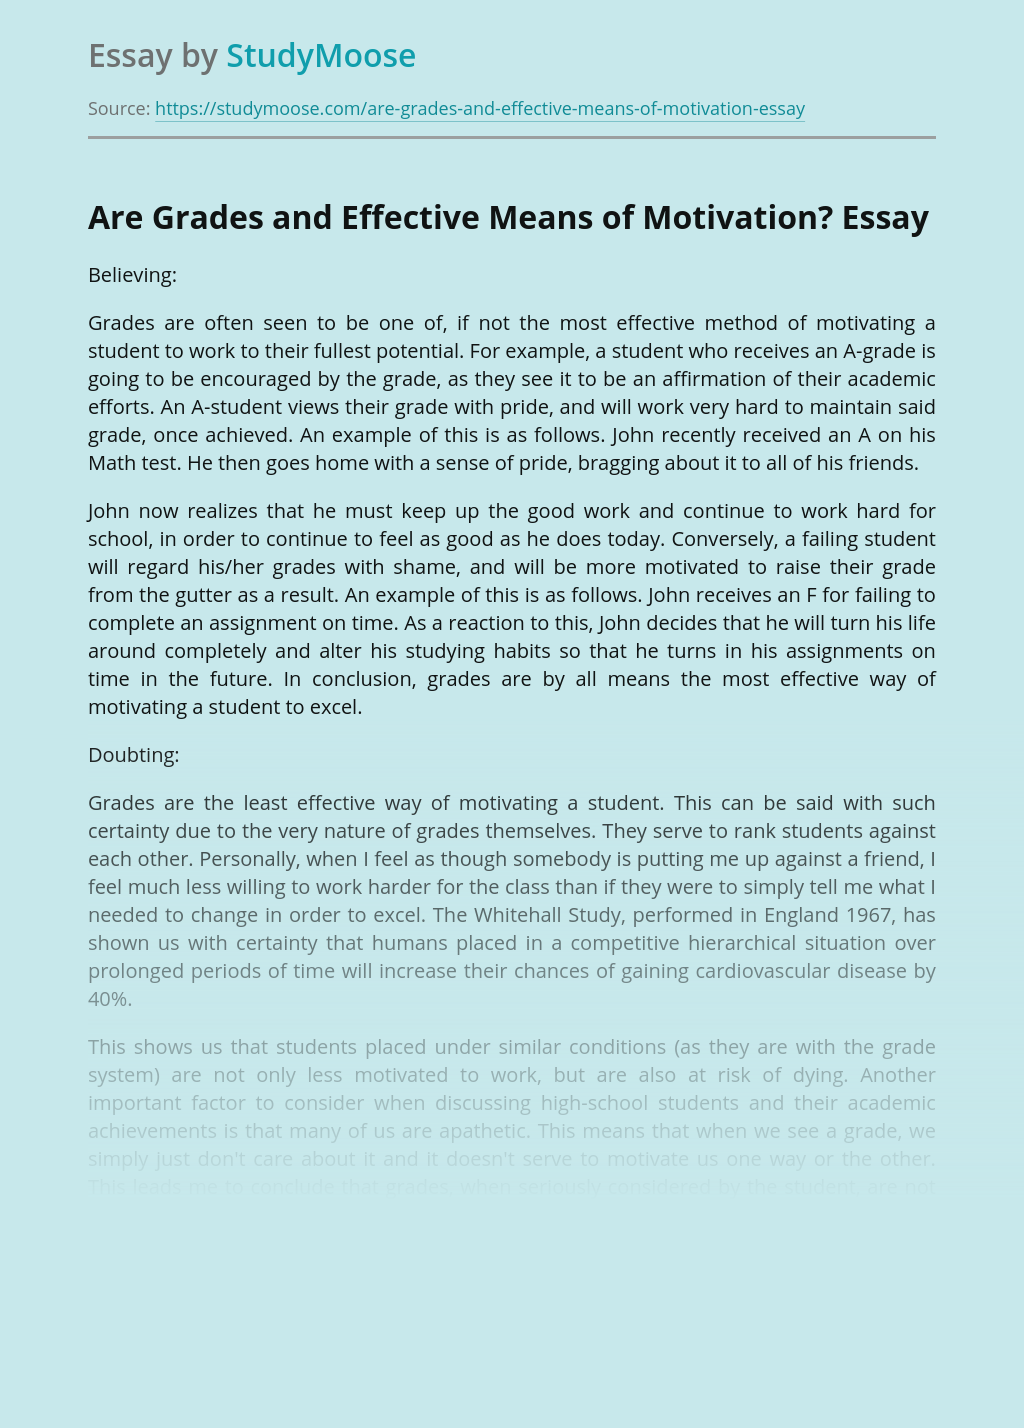 Are Grades and Effective Means of Motivation?